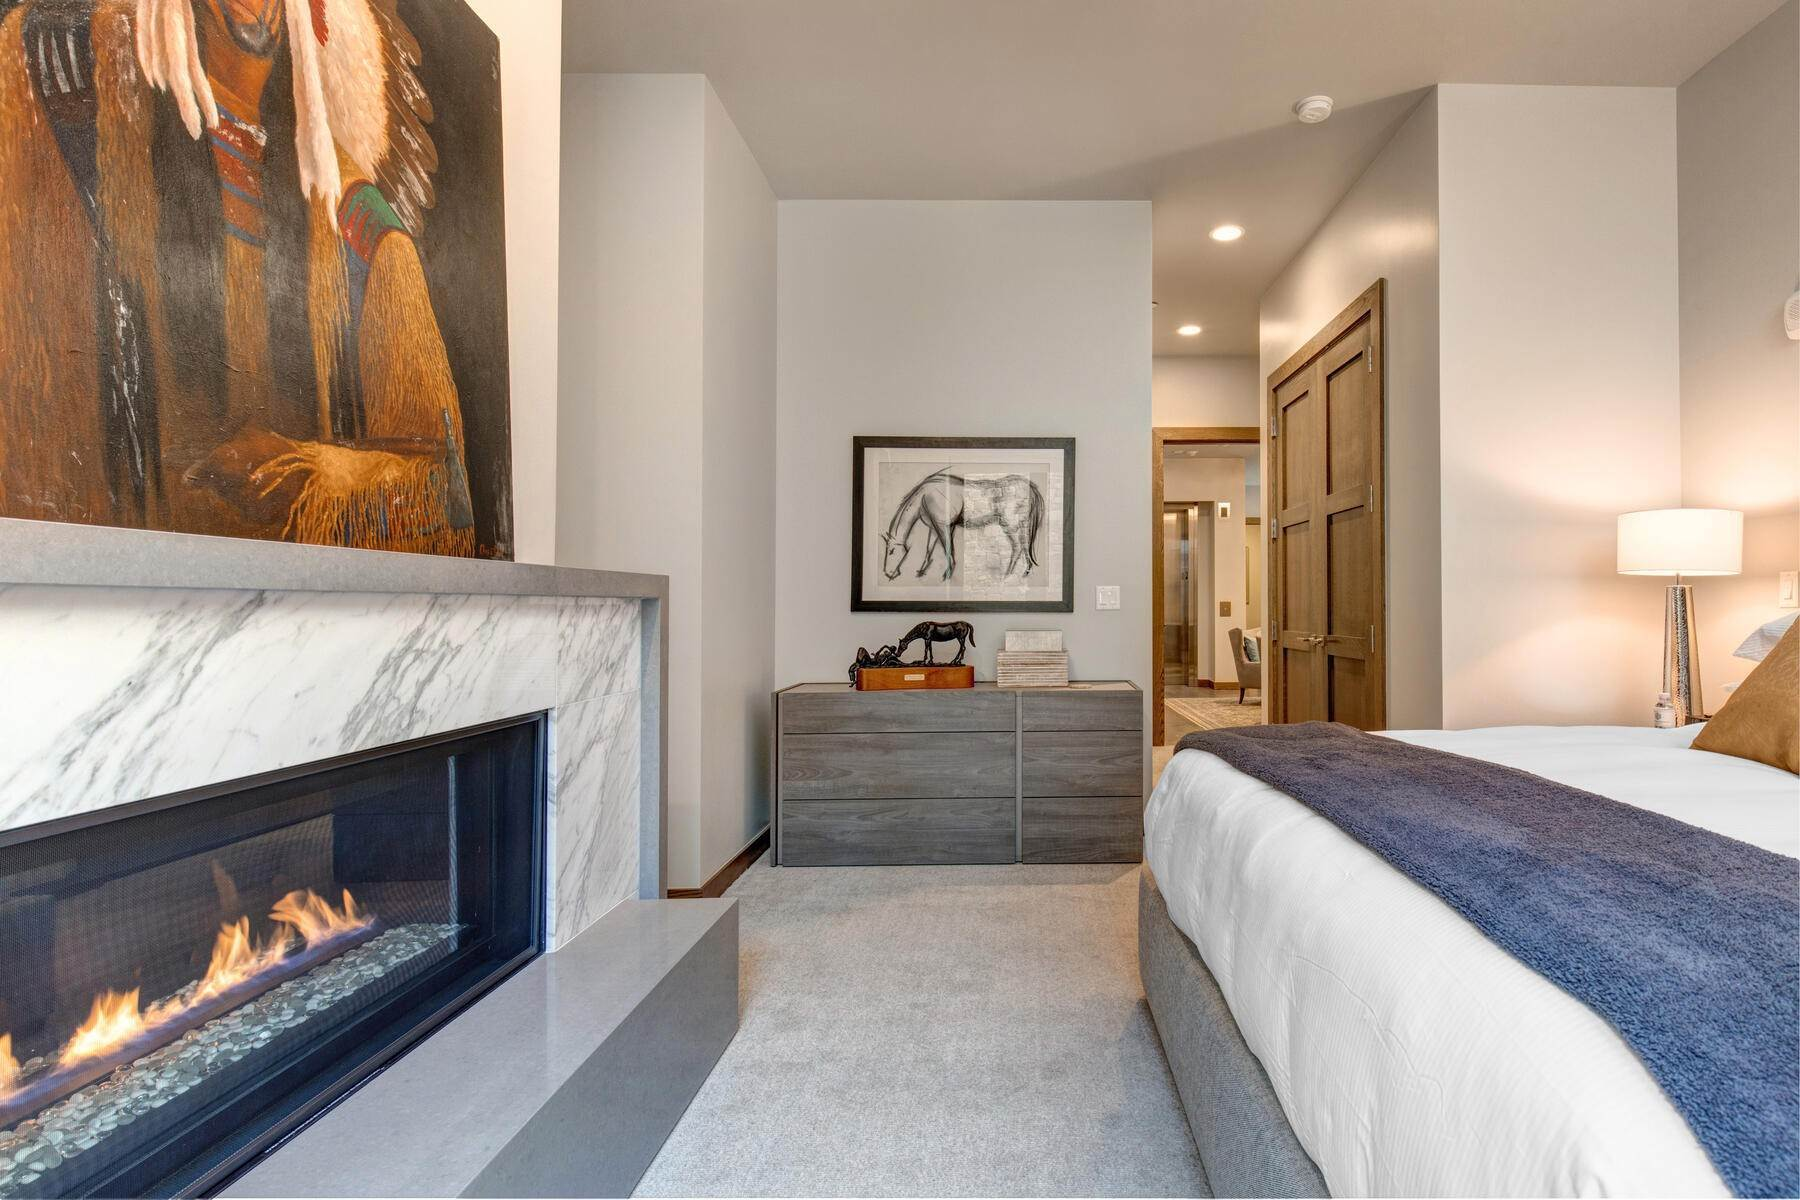 19. Condominiums for Sale at Ski-In Ski-Out Alpine Luxury Living at Stein Eriksen Residences 6702 Stein Circle #131 Park City, Utah 84060 United States